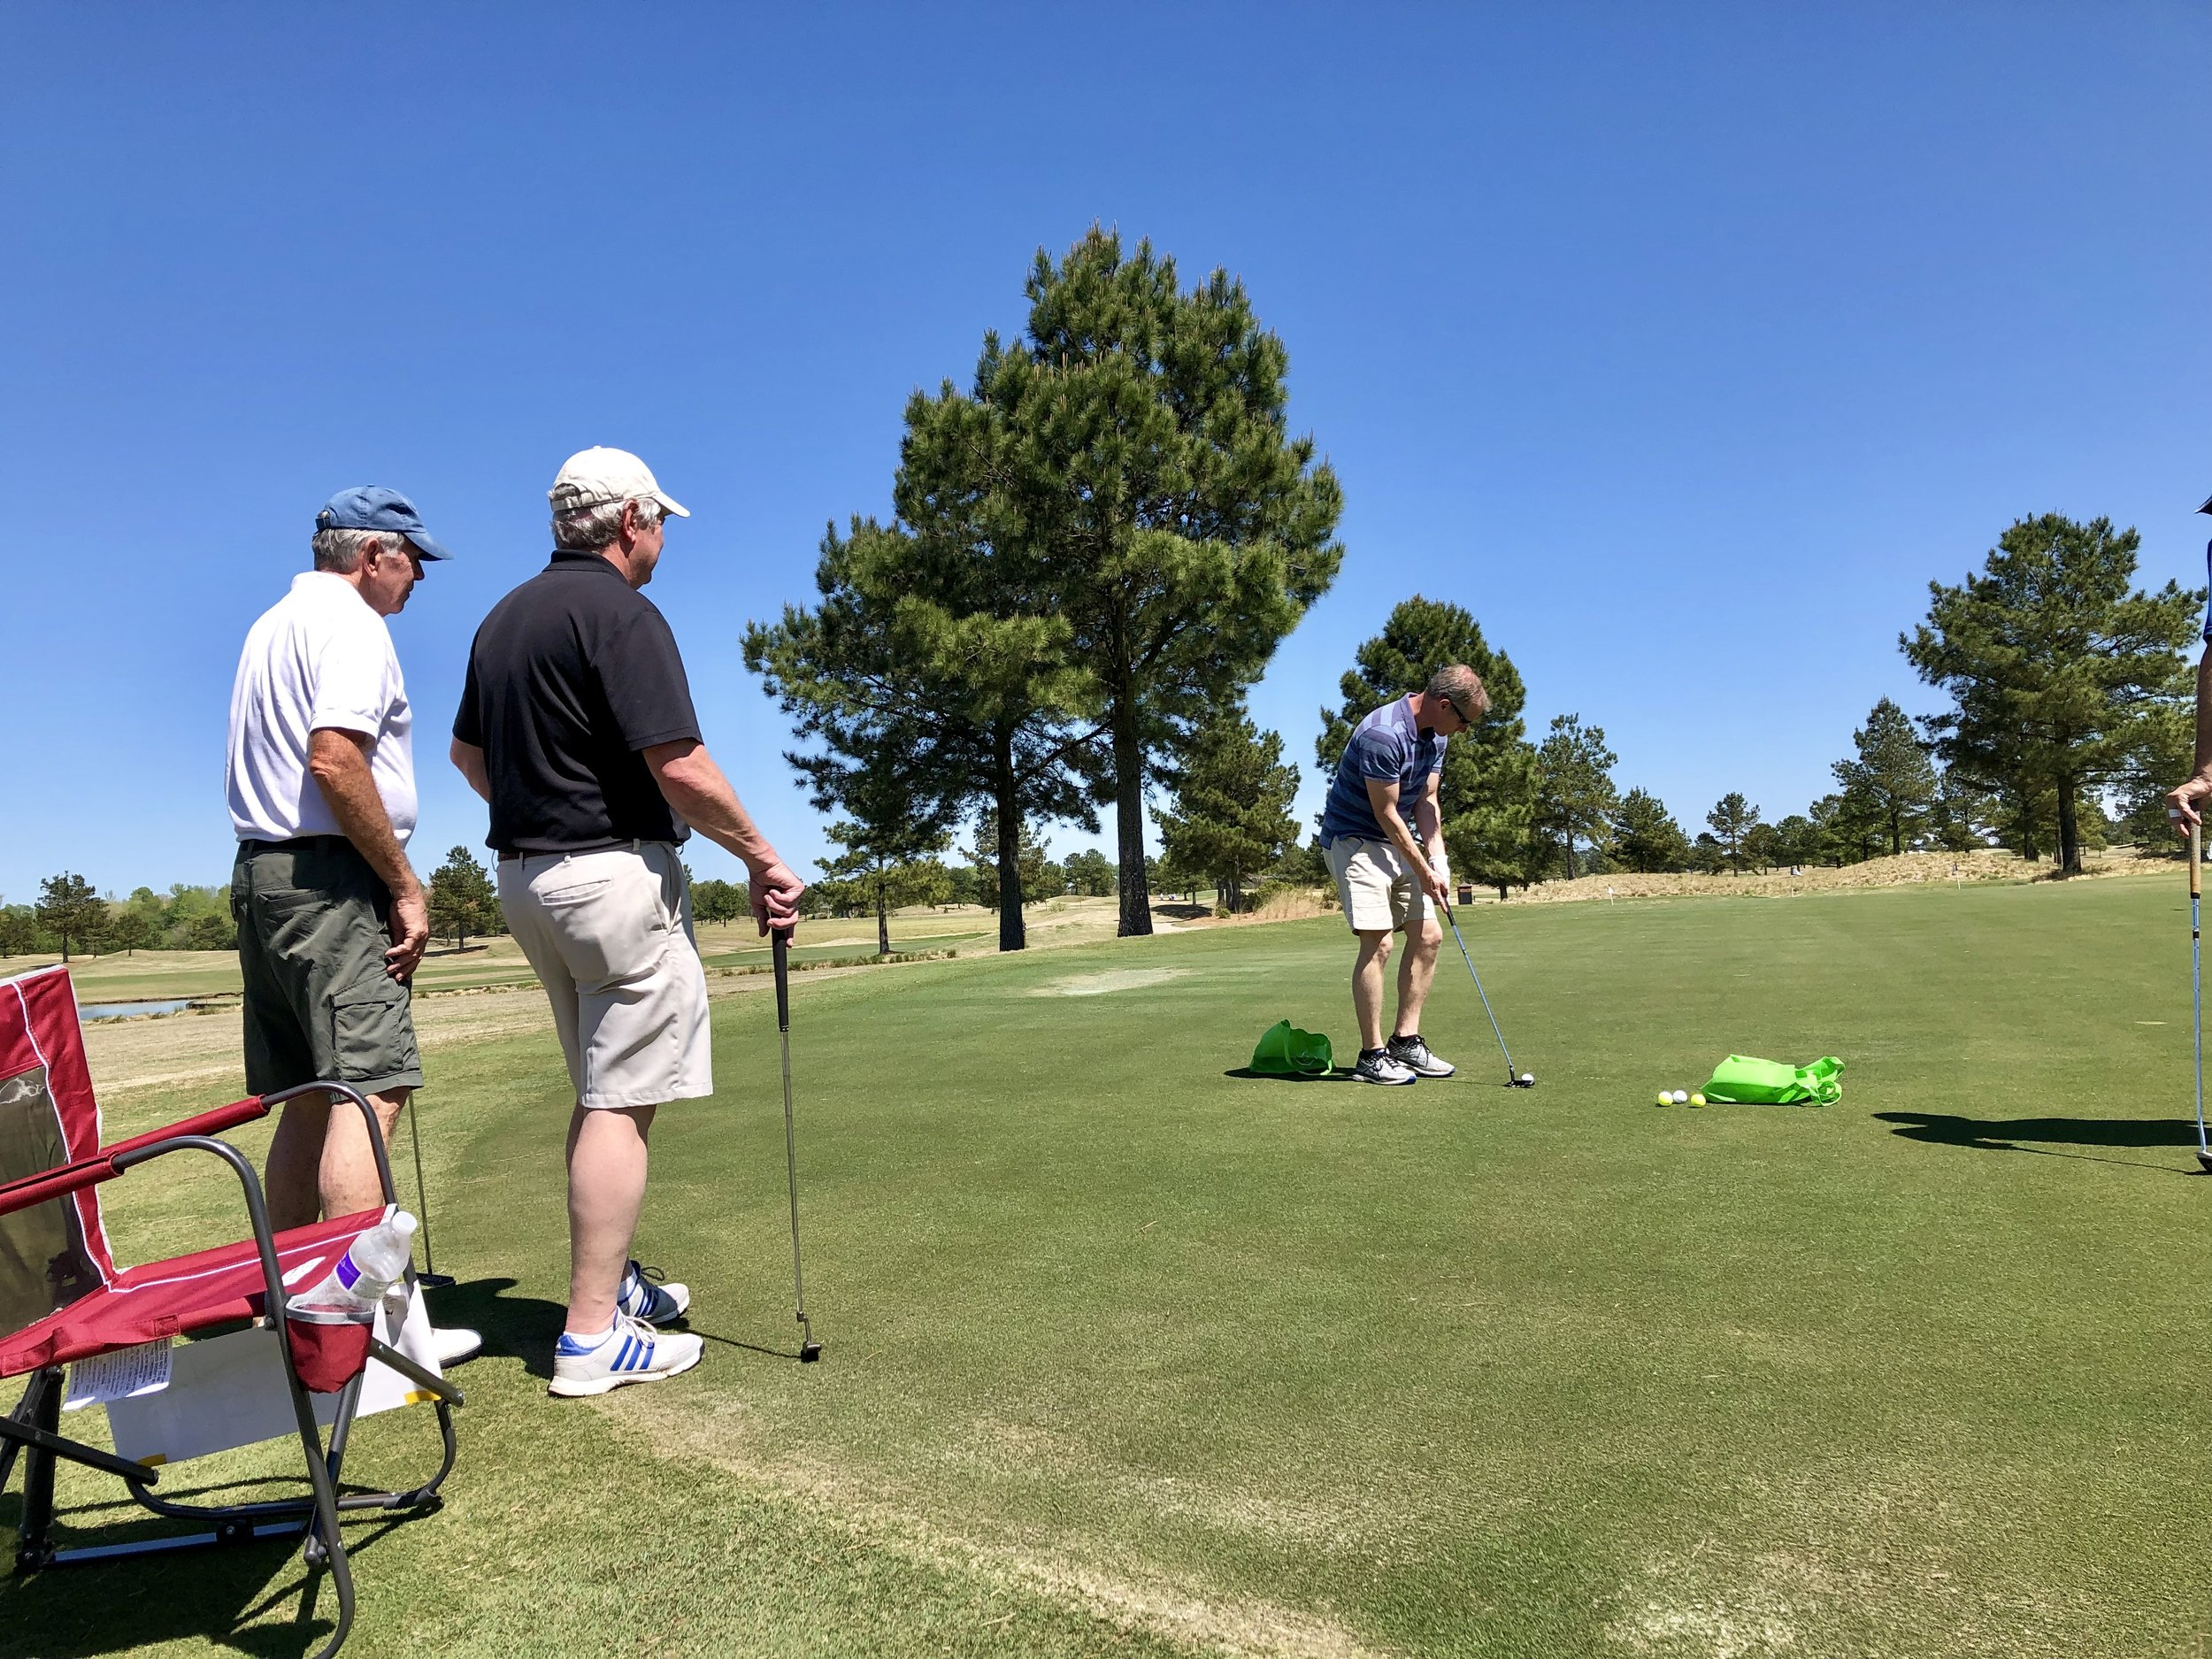 Jason McKnight lines up his putt in the putting contest during the tournament. Teammates Doug Hampton, Lee Trevino and Steve Katkaveck look on. Photo by Catherine Hardee / Neuse News